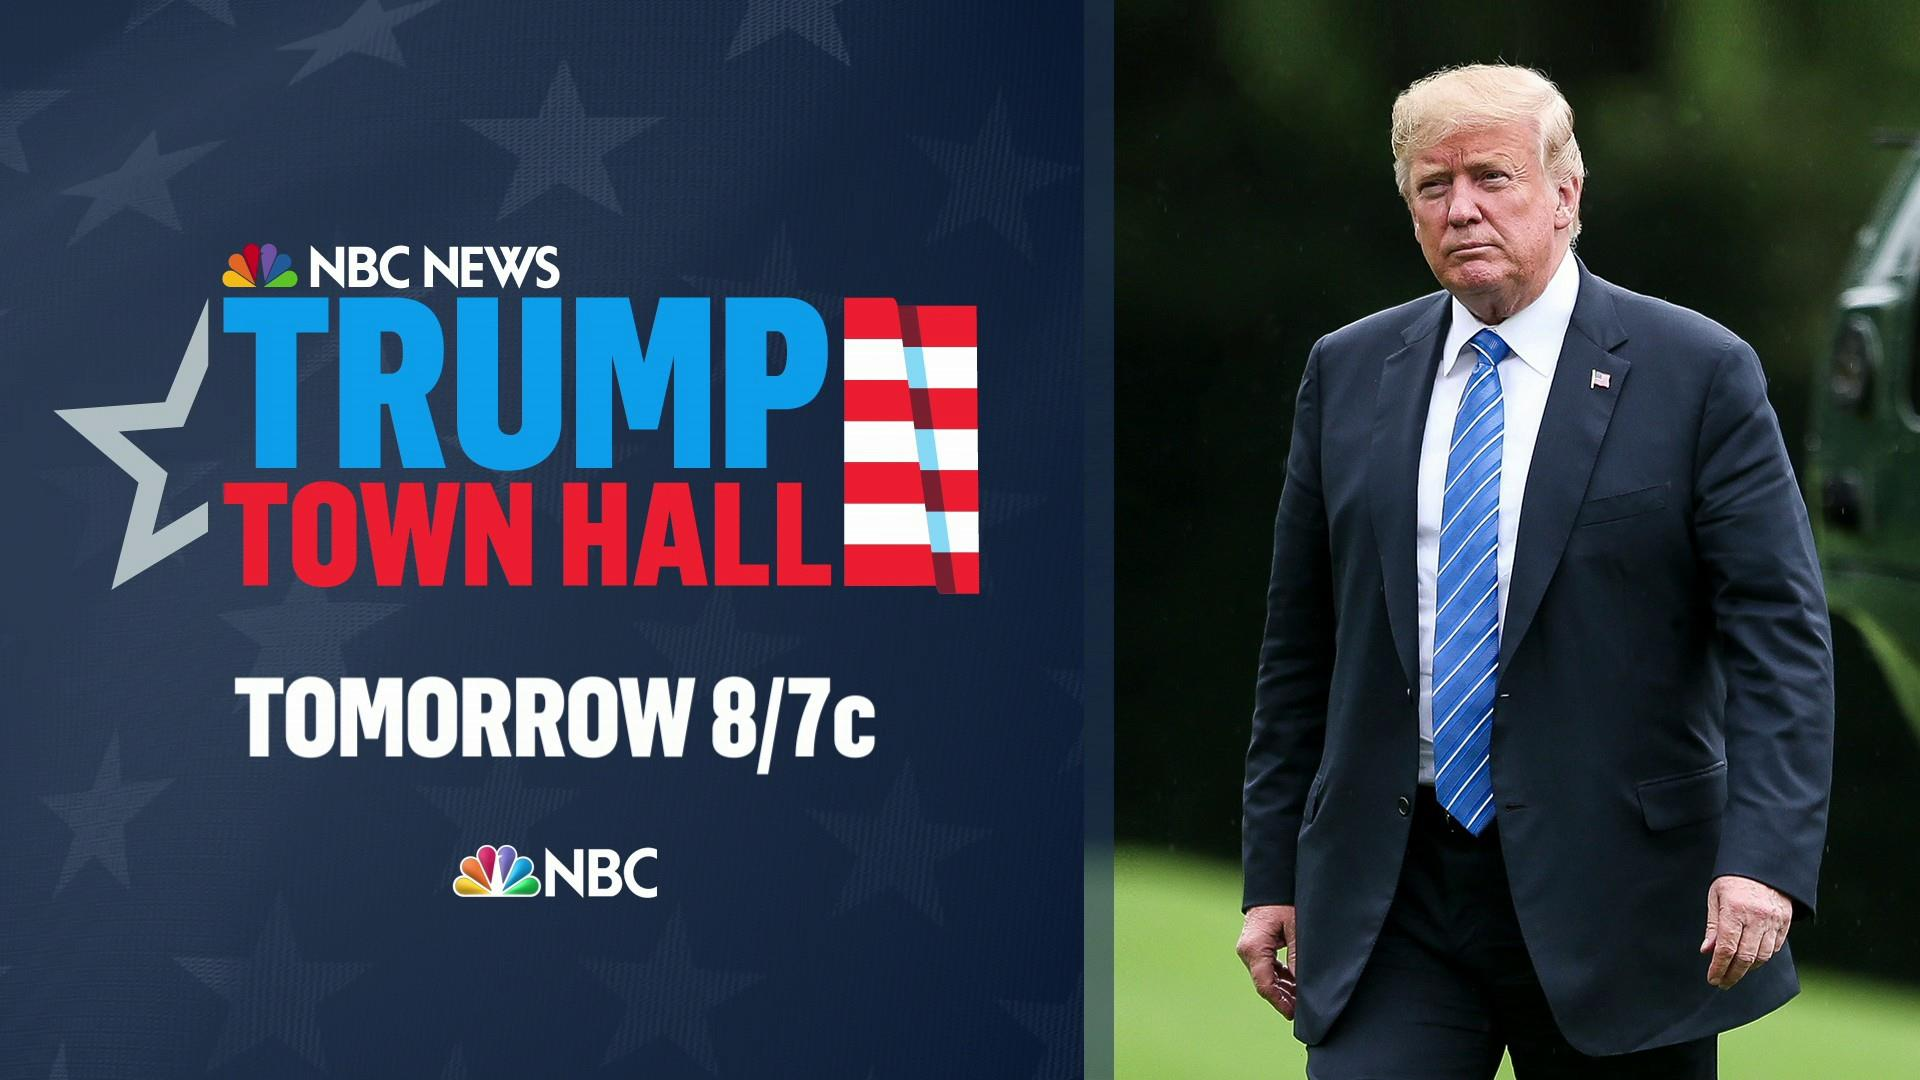 NBC News to host town hall with Trump ...